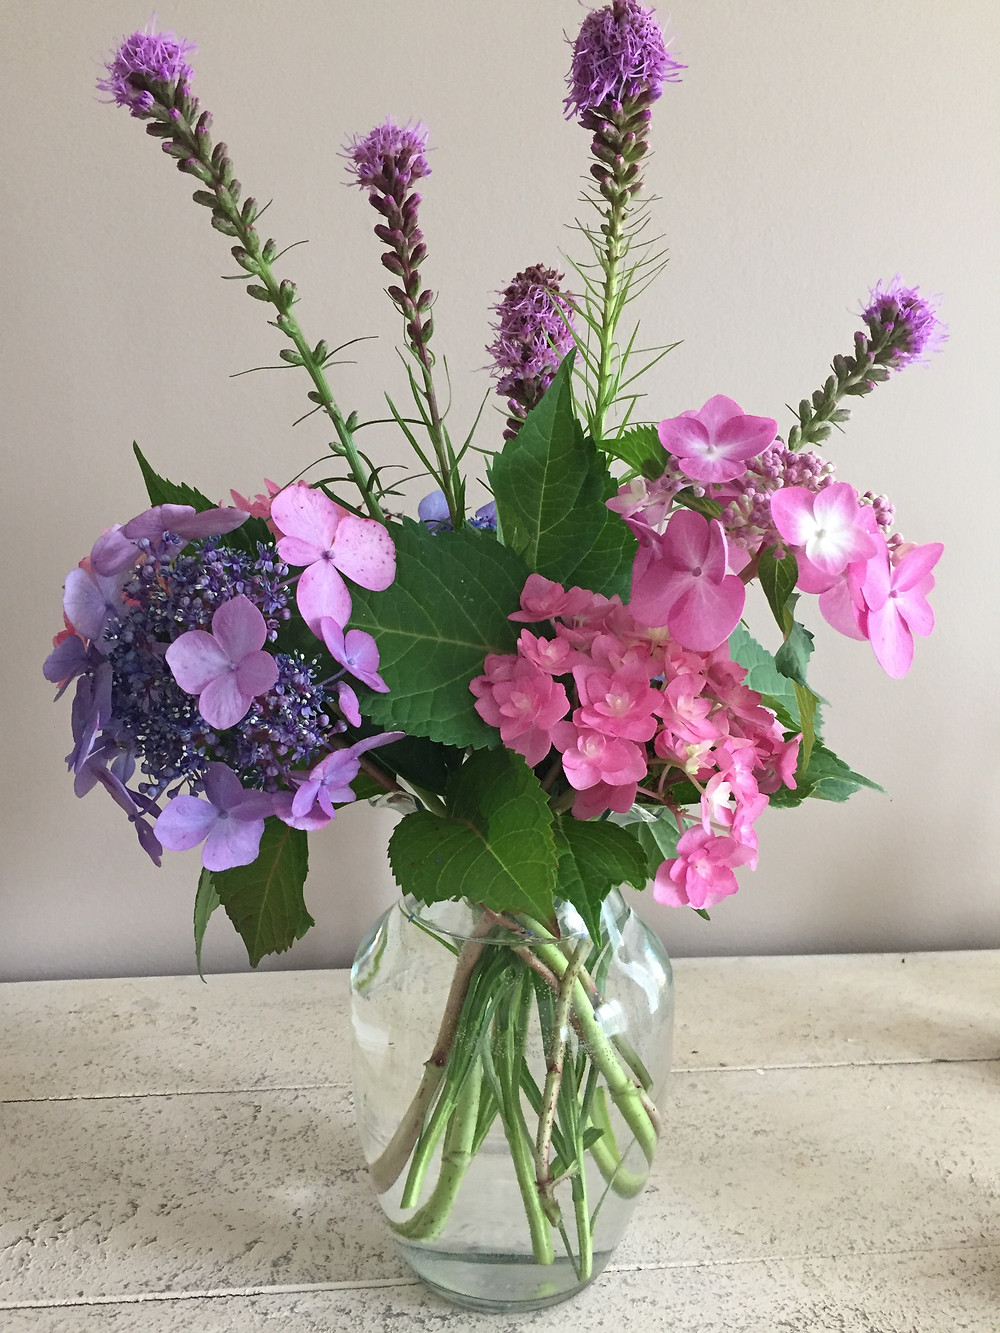 Make bouquets from your garden, like this one from Victoria's yard